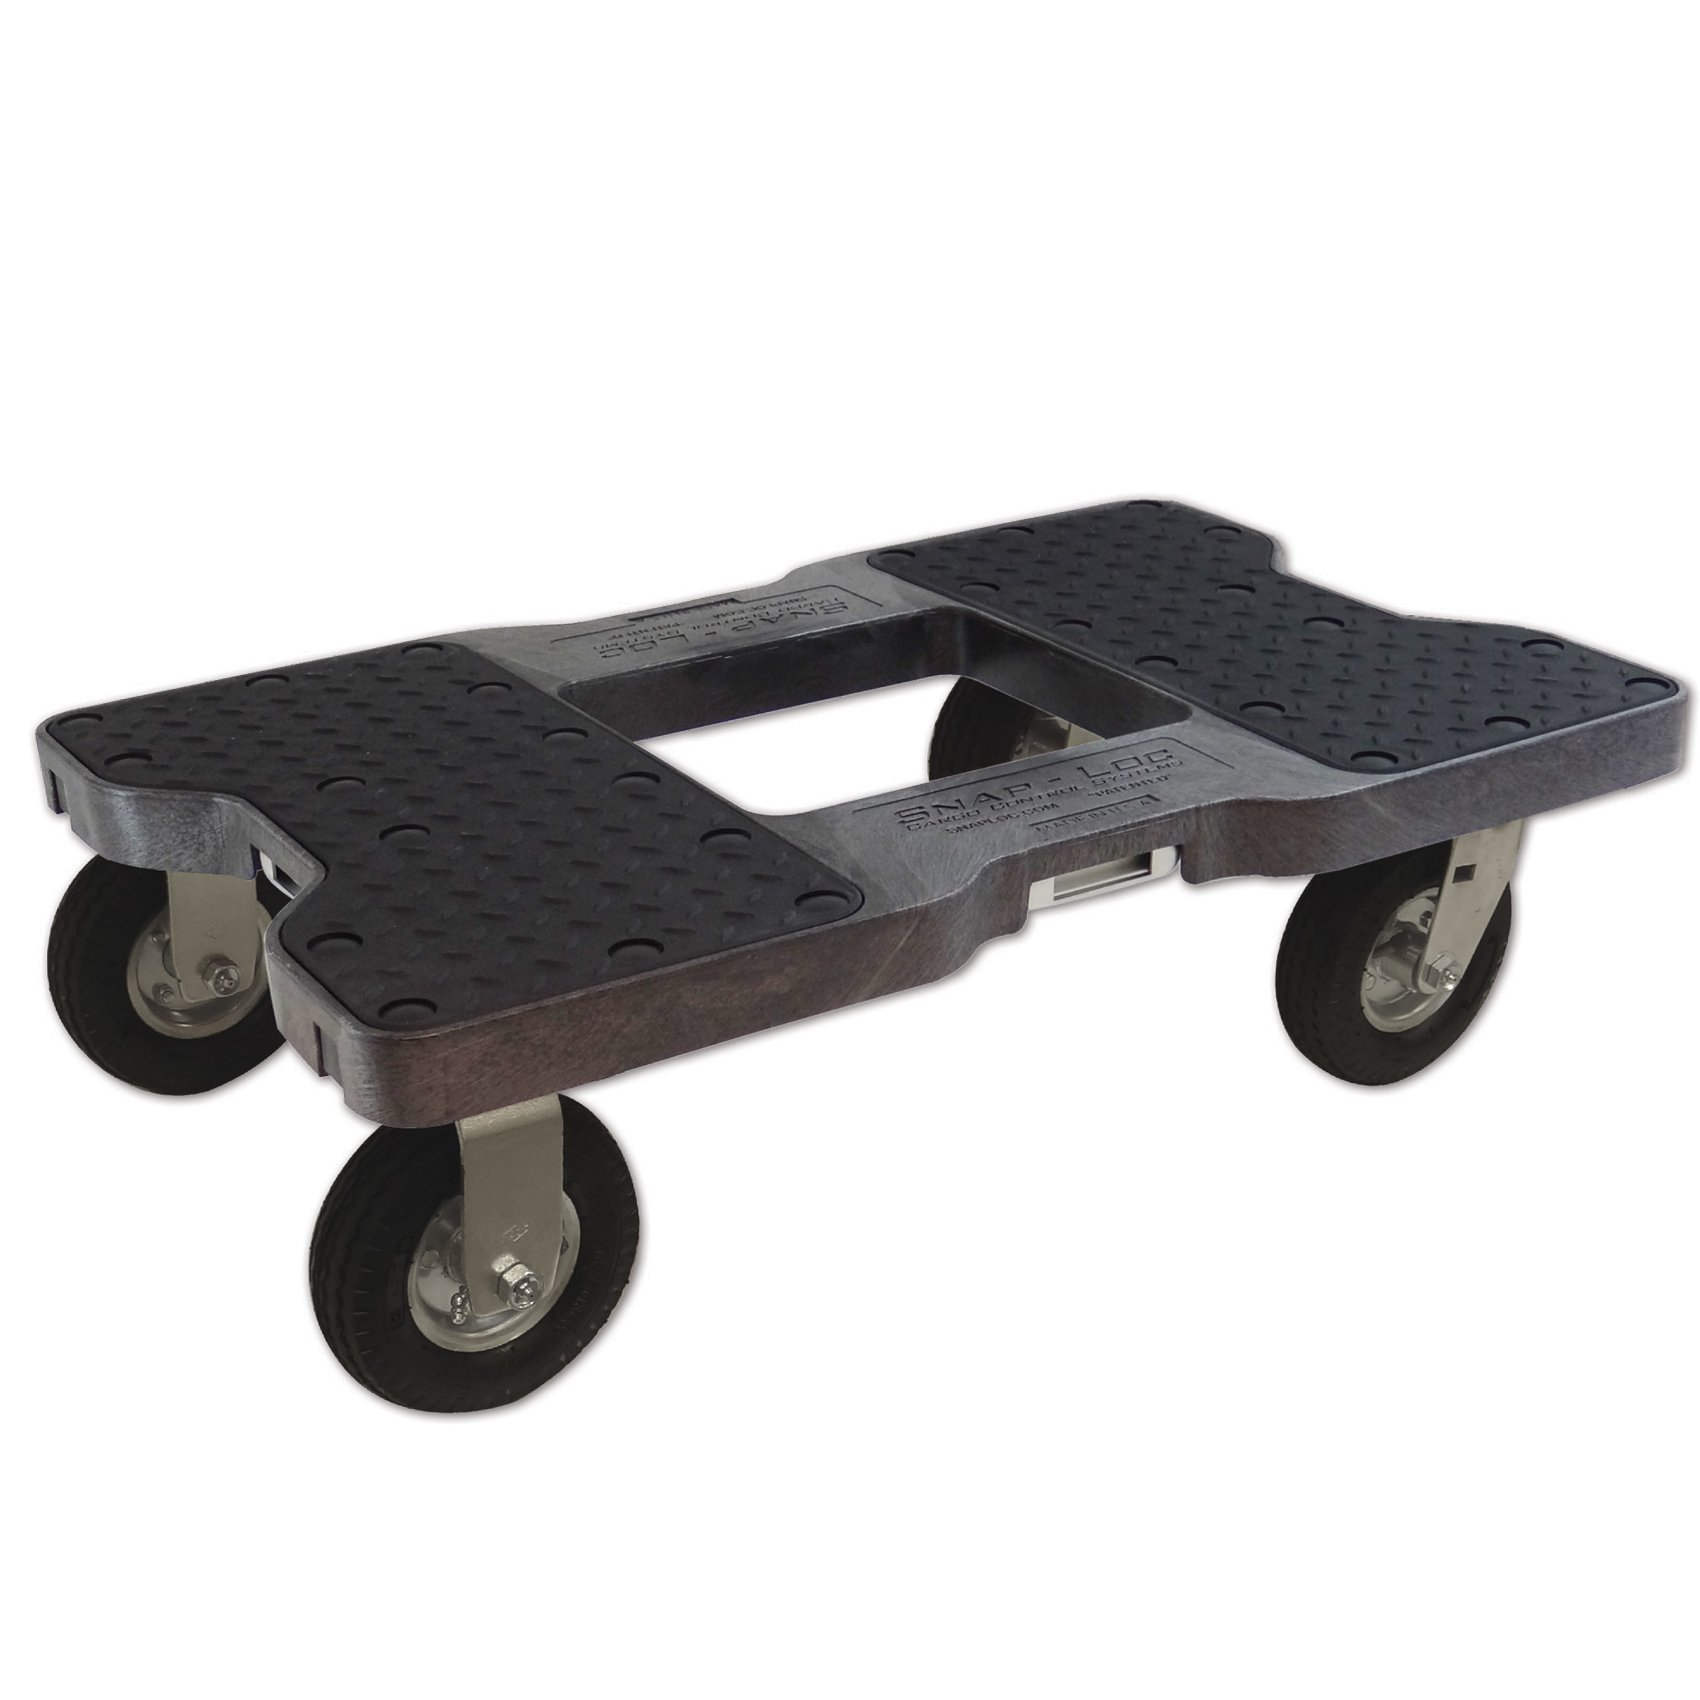 SNAP-LOC AIR-RIDE DOLLY BLACK (USA!) with 1500 lb Capacity, Steel Frame, 6 inch Casters and optional E-Strap Attachment by Snap-Loc Cargo Control